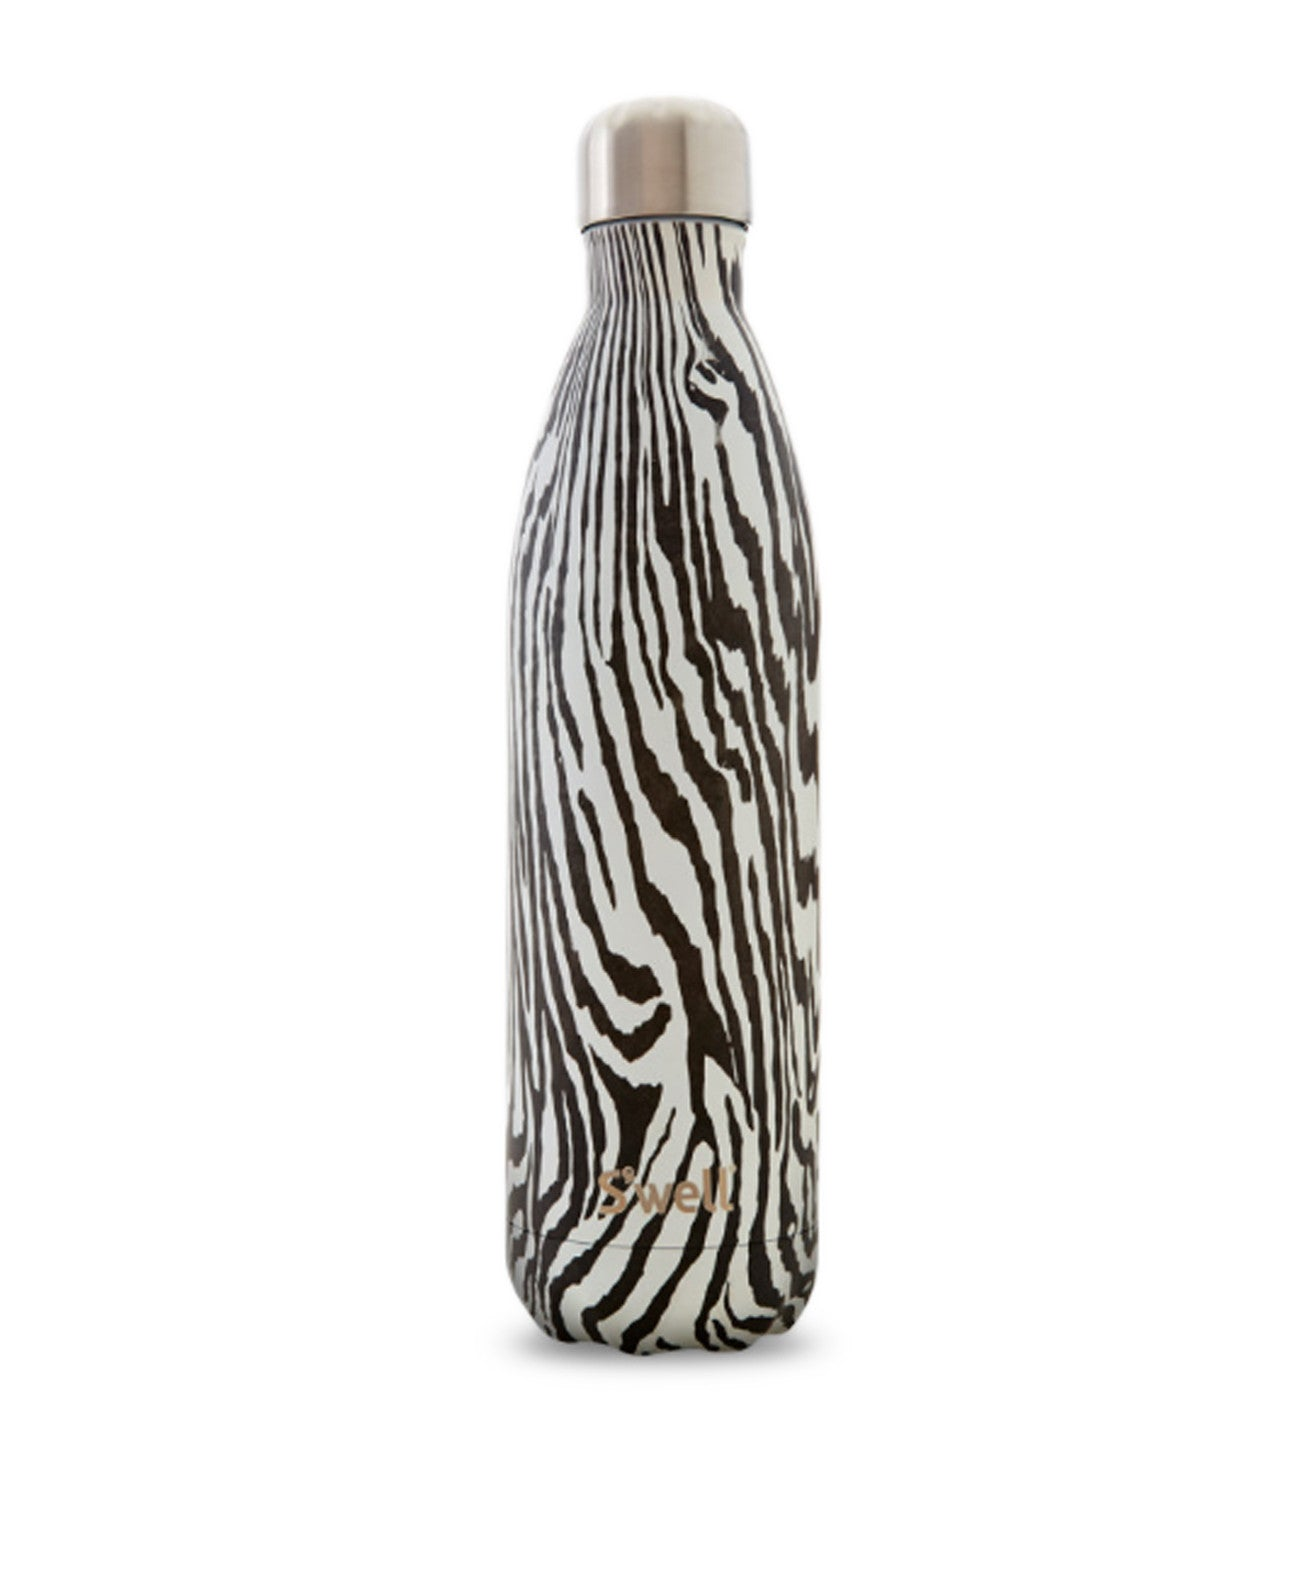 Noir Zebra Bottle (25oz) - Koko & Palenki